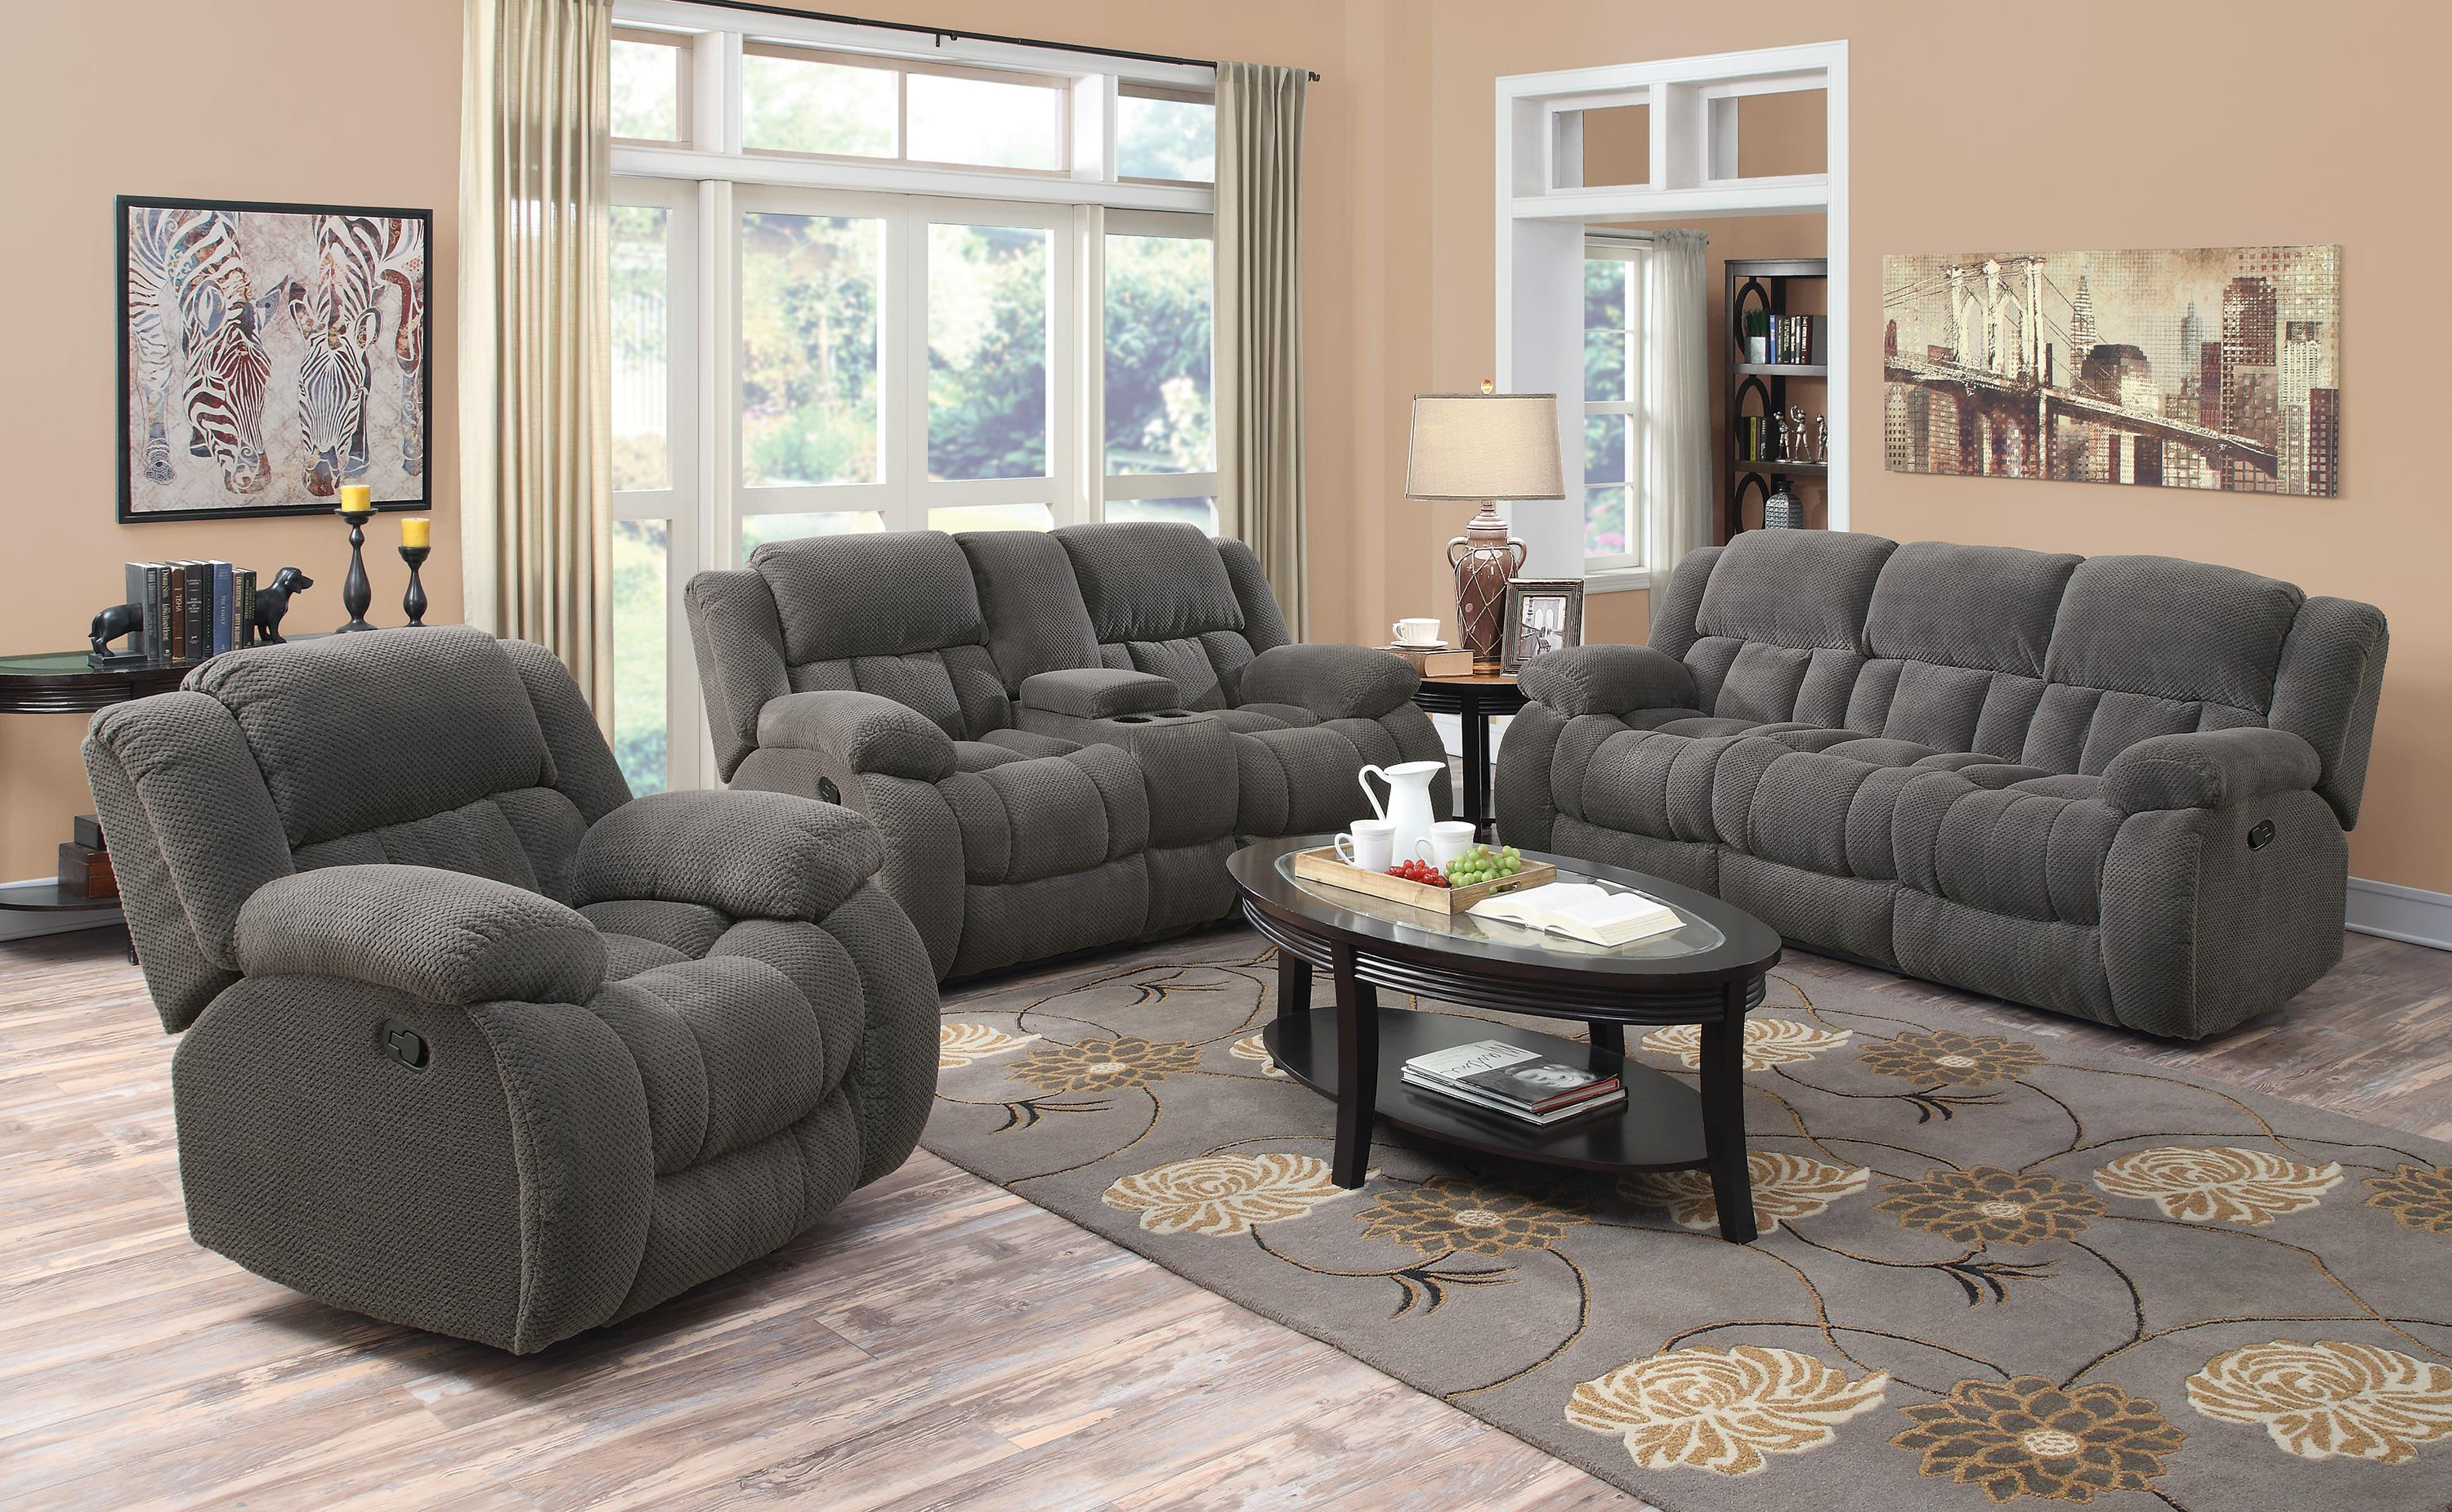 Coaster Weissman Reclining Living Room Group - Item Number: 60192 Living Room Group 1